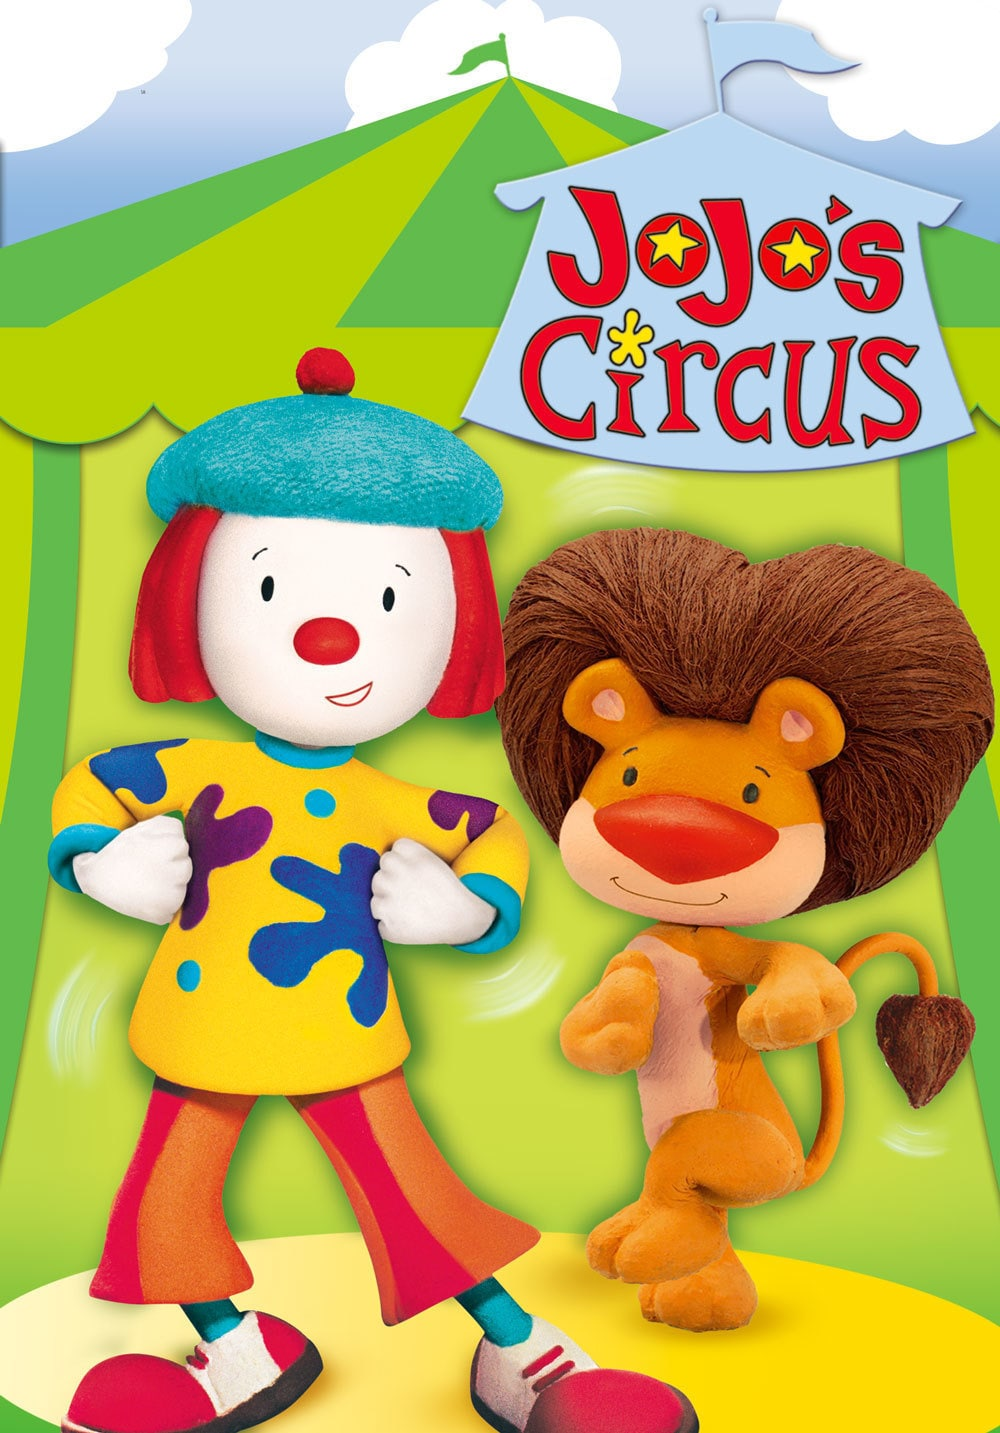 JoJo's Circus Products | Disney Movies